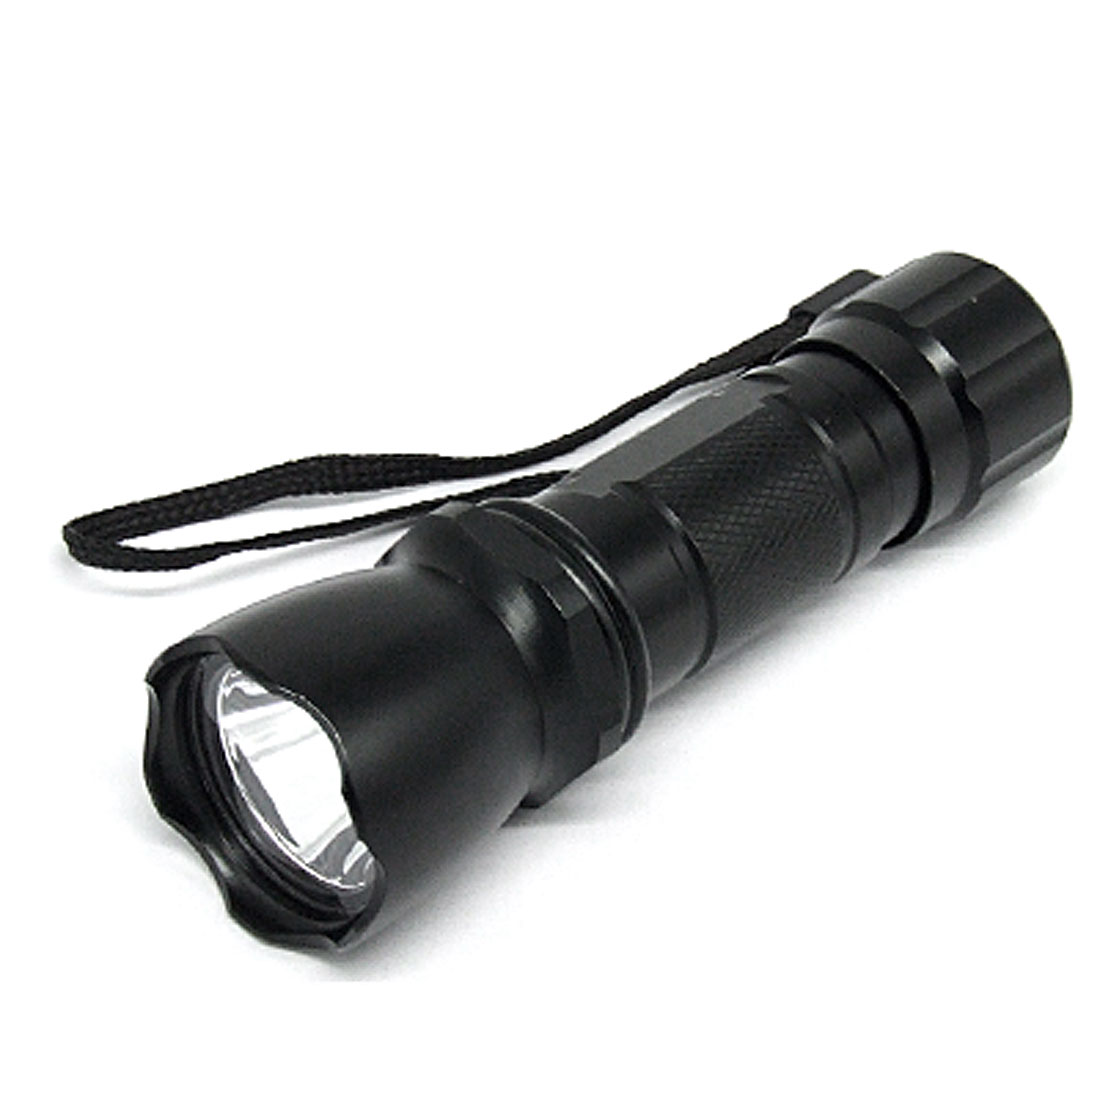 Mini Alloy Hand Torch Flashlight Light with White LED